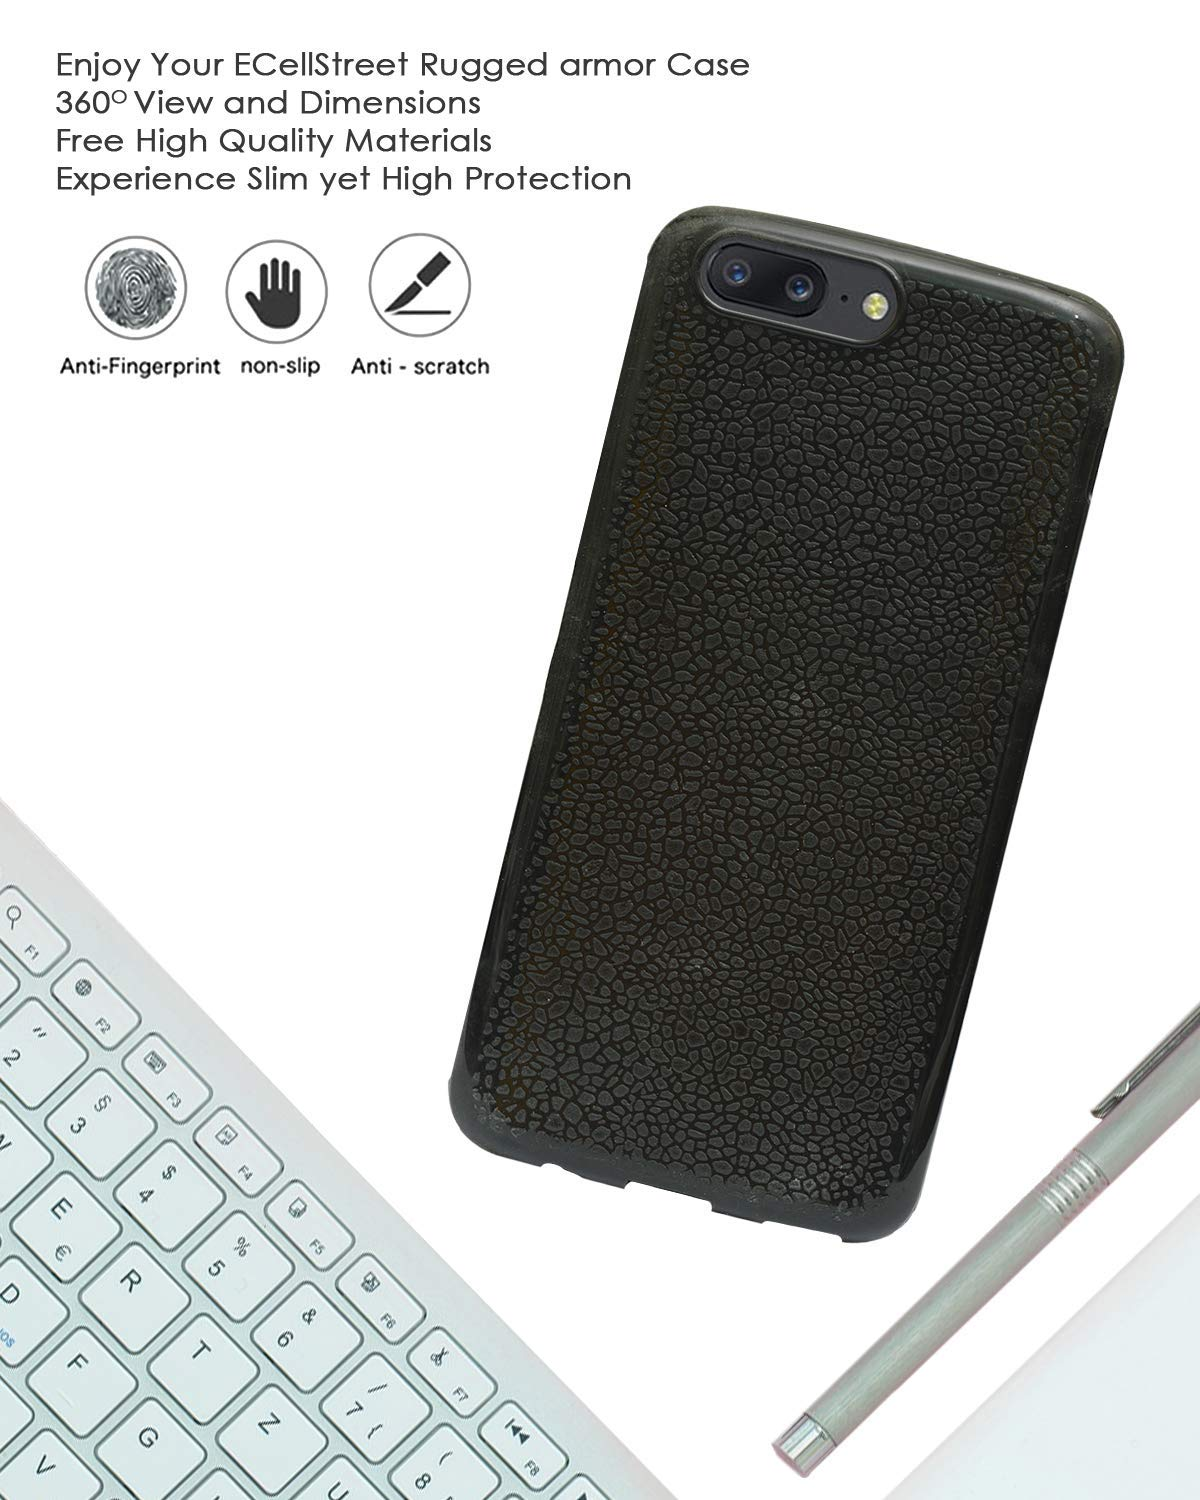 OnePlus 5 Silicon Soft Back Cover Protective Case (Black)